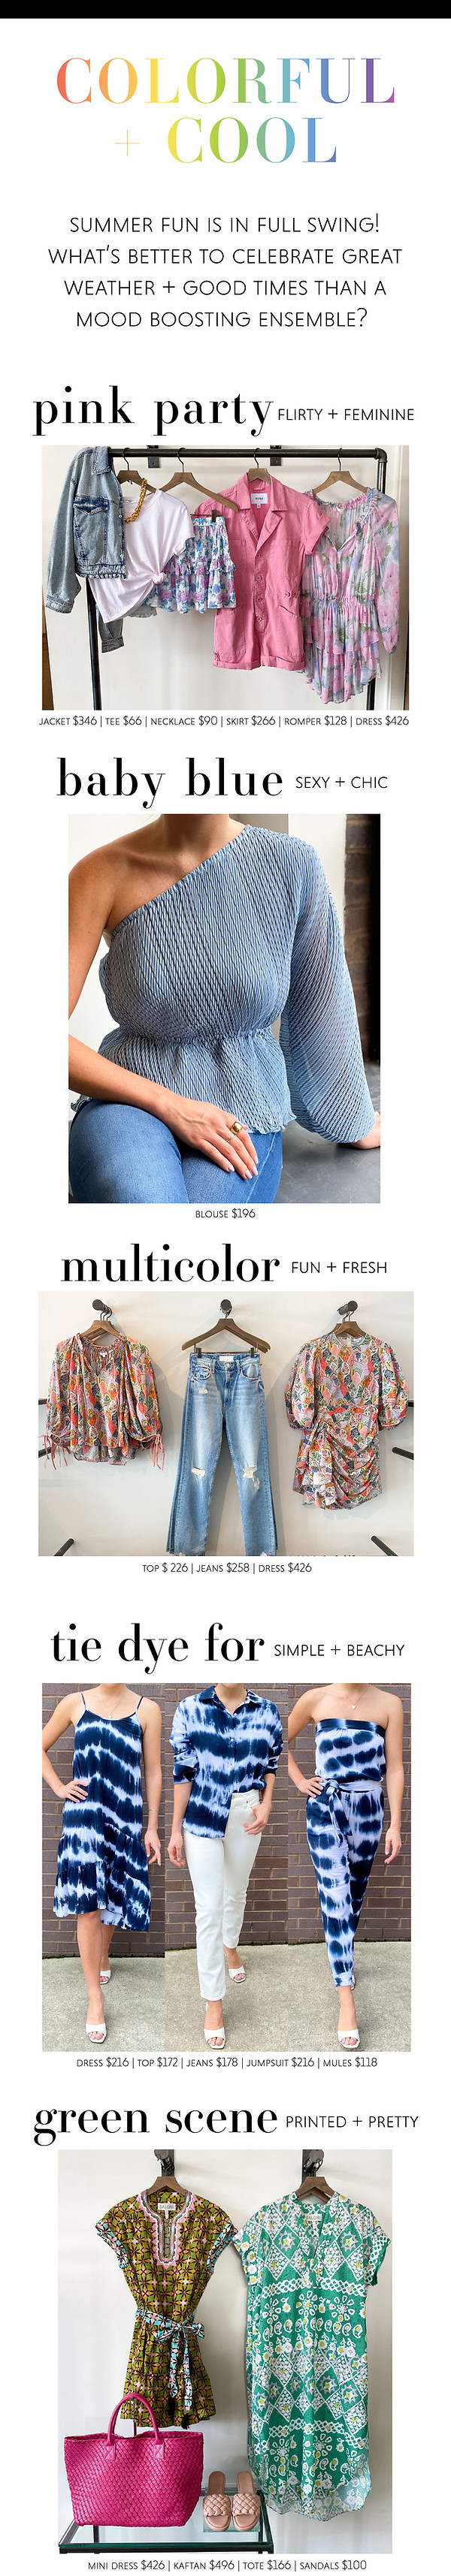 colorful and cool-02.jpg